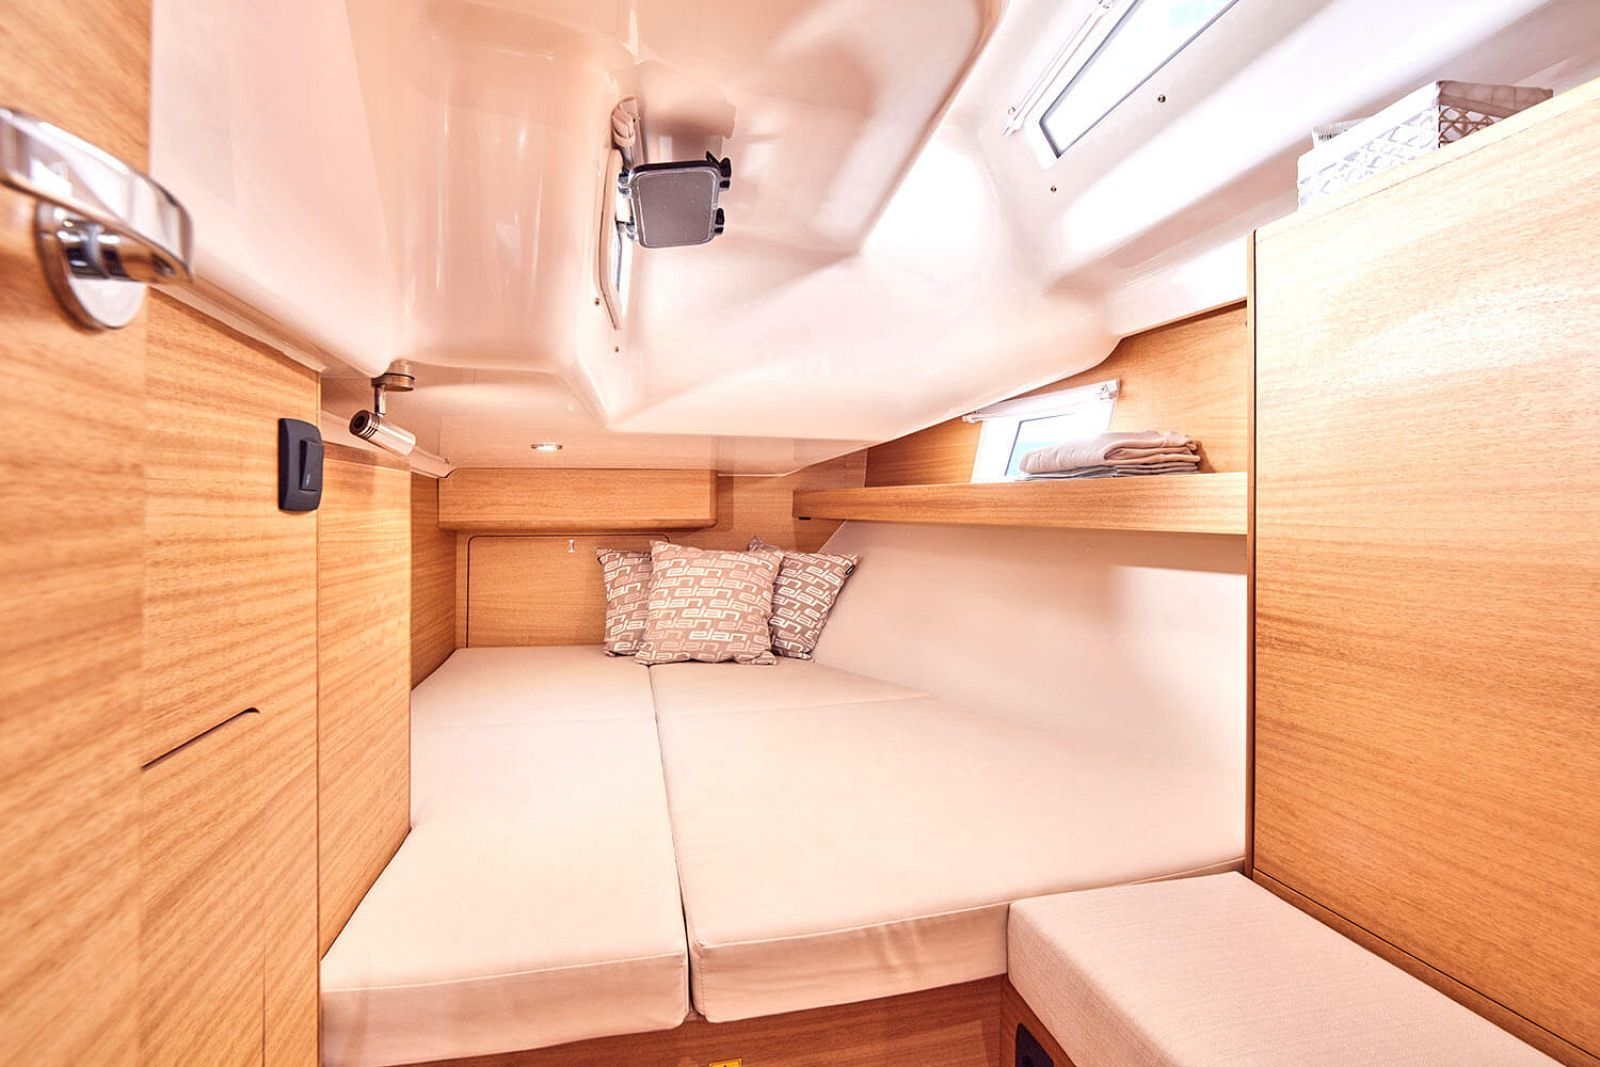 cabin on the elan yachts impression 45.1